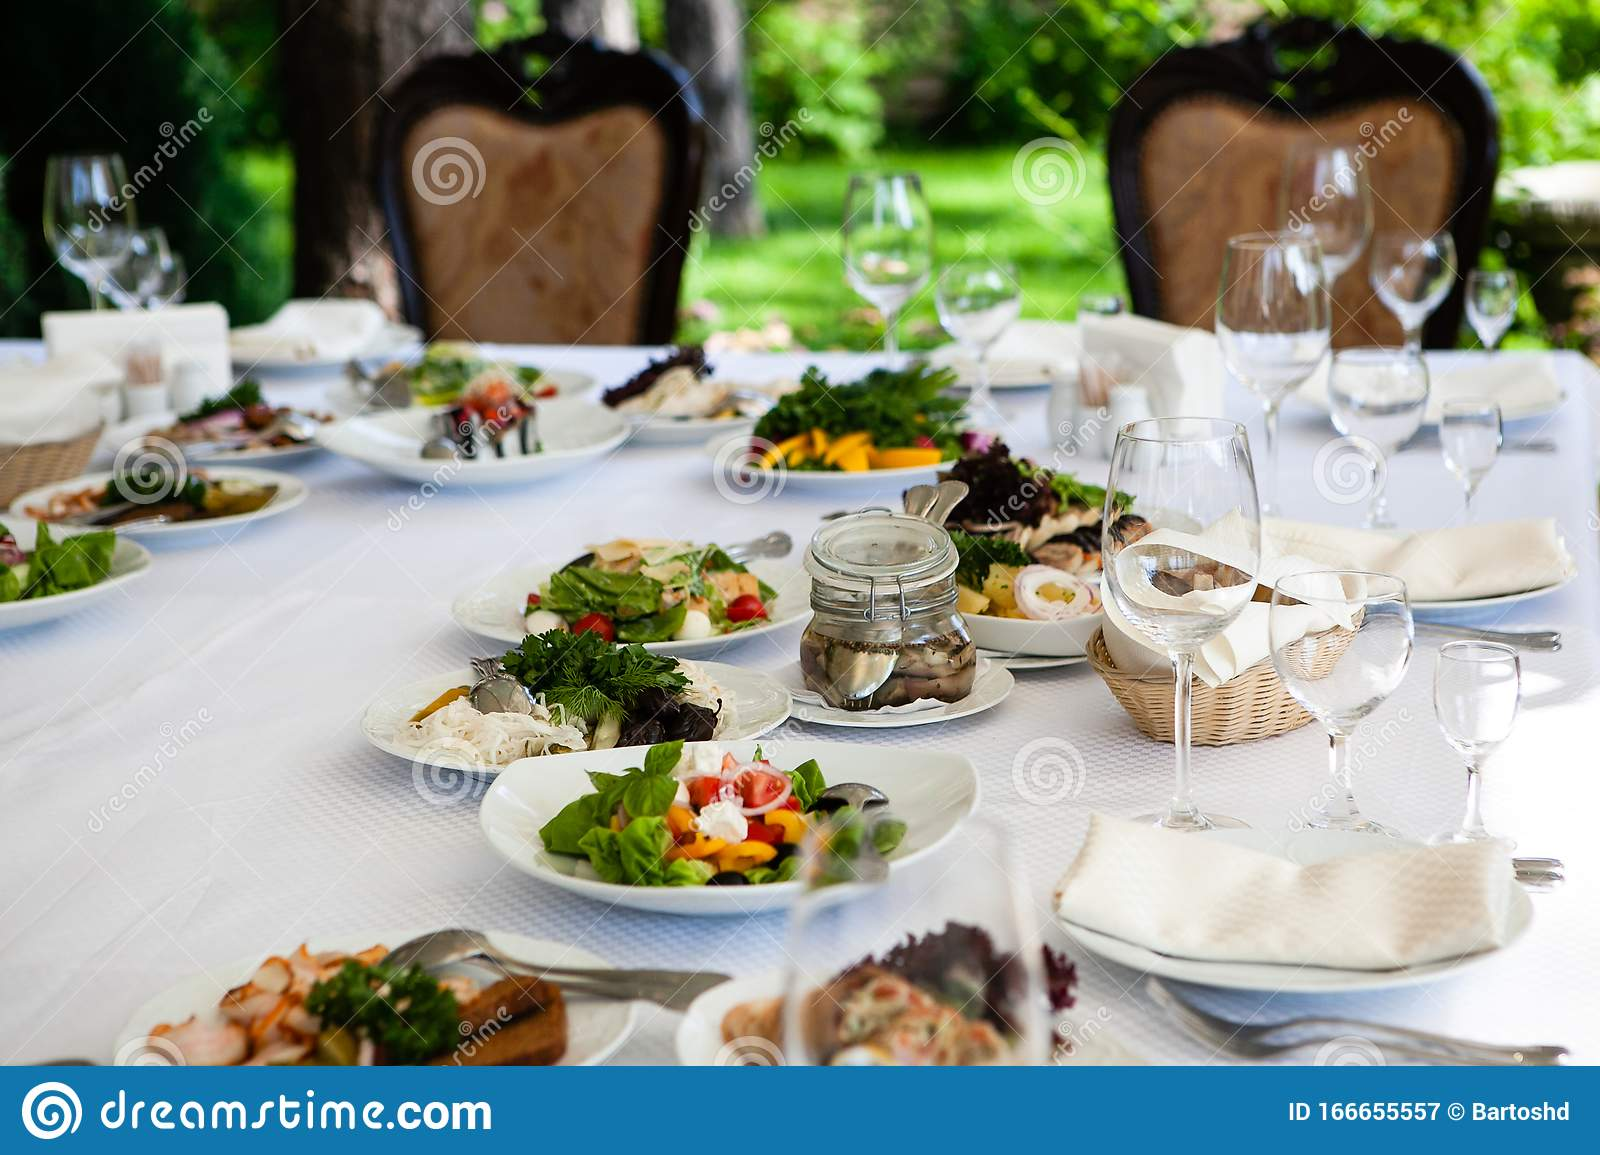 Served For Banquet Restaurant Table With Dishes Snack Wine